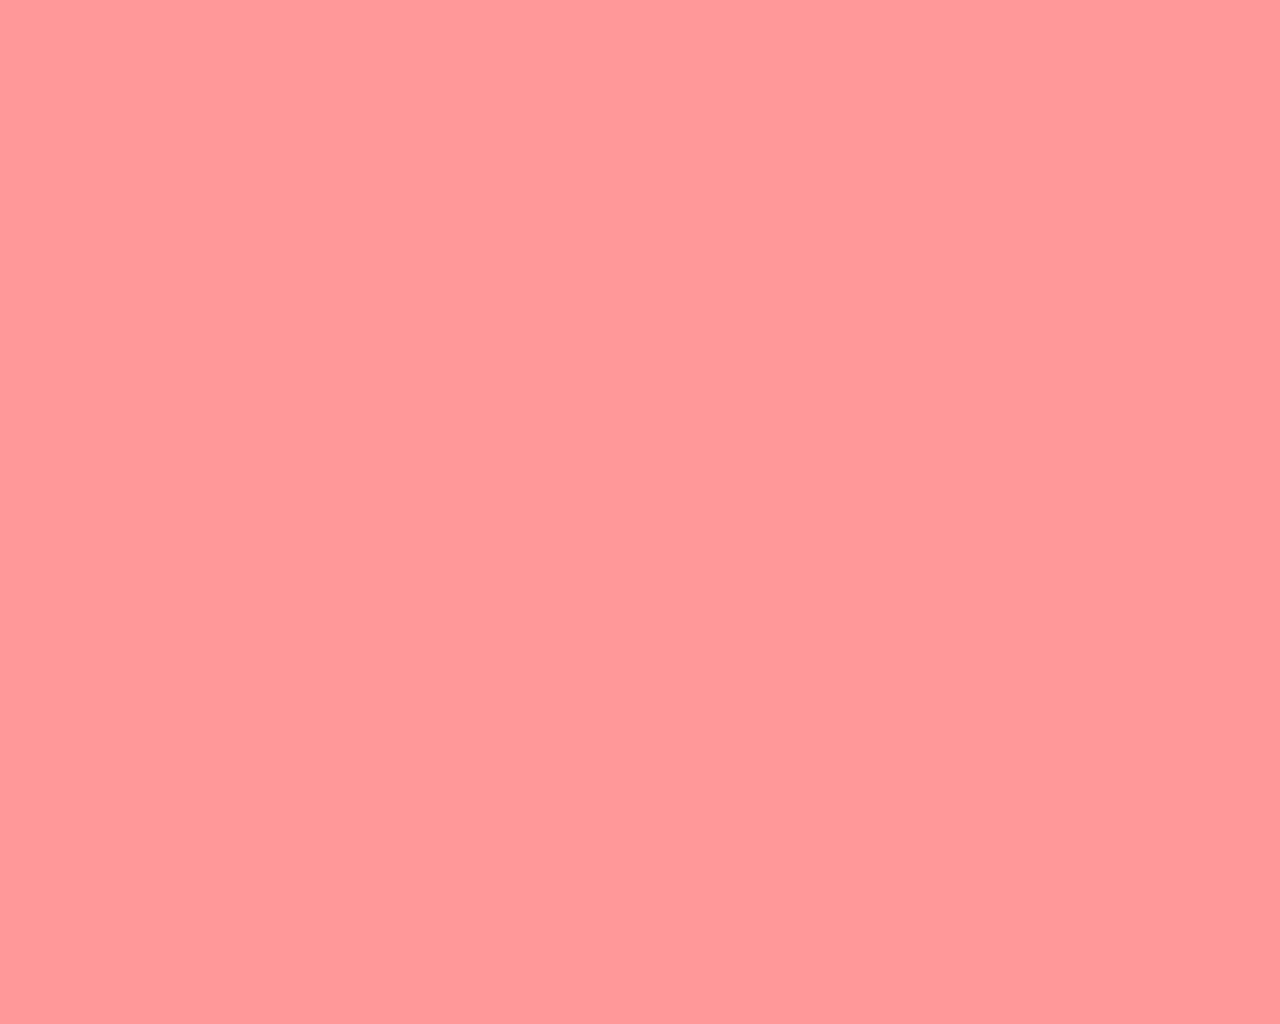 Salmon Colored Wallpaper - WallpaperSafari